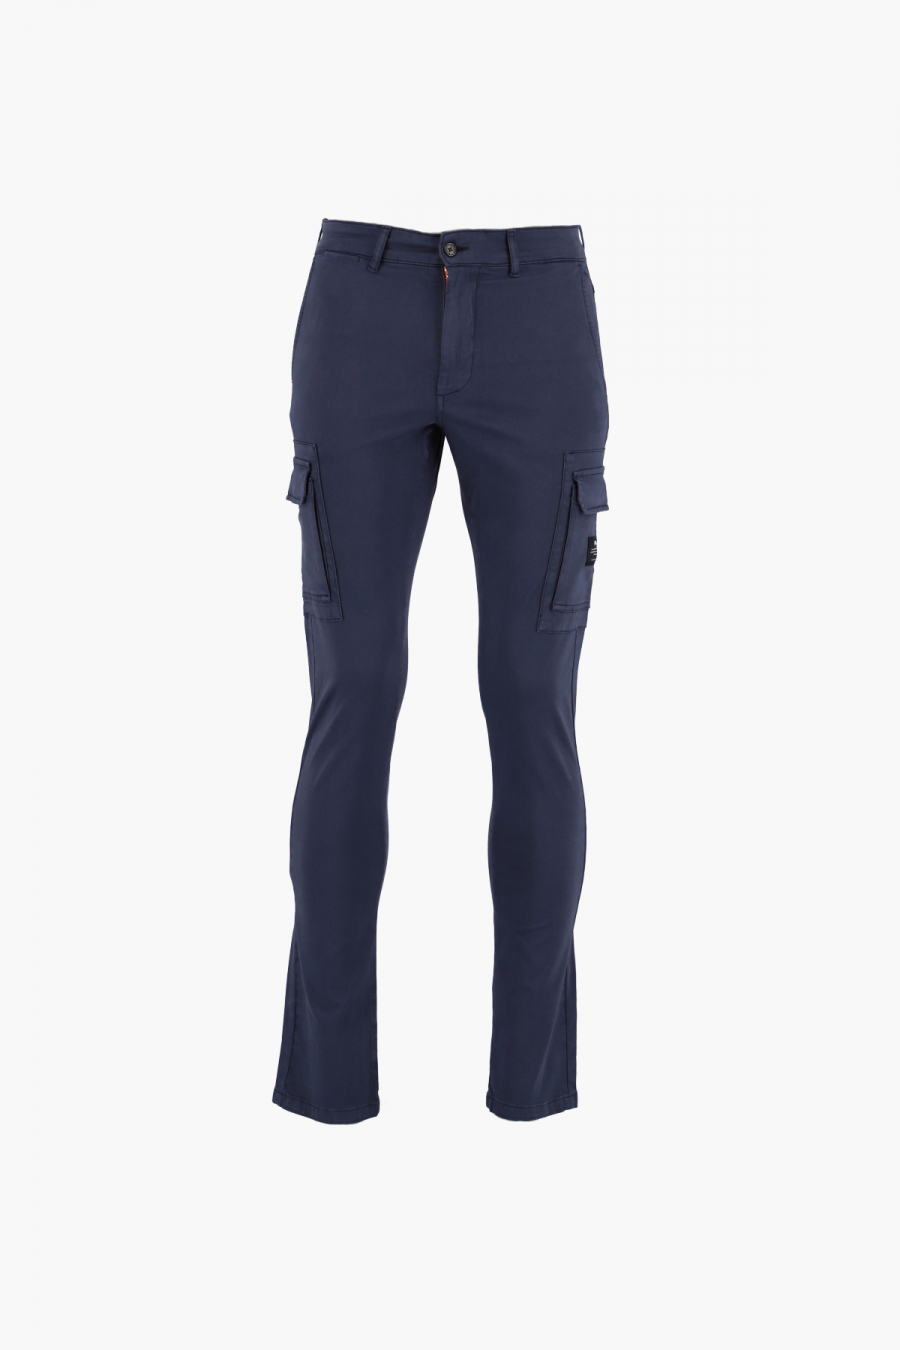 ALPINA CARGO LONG PANTS MAN